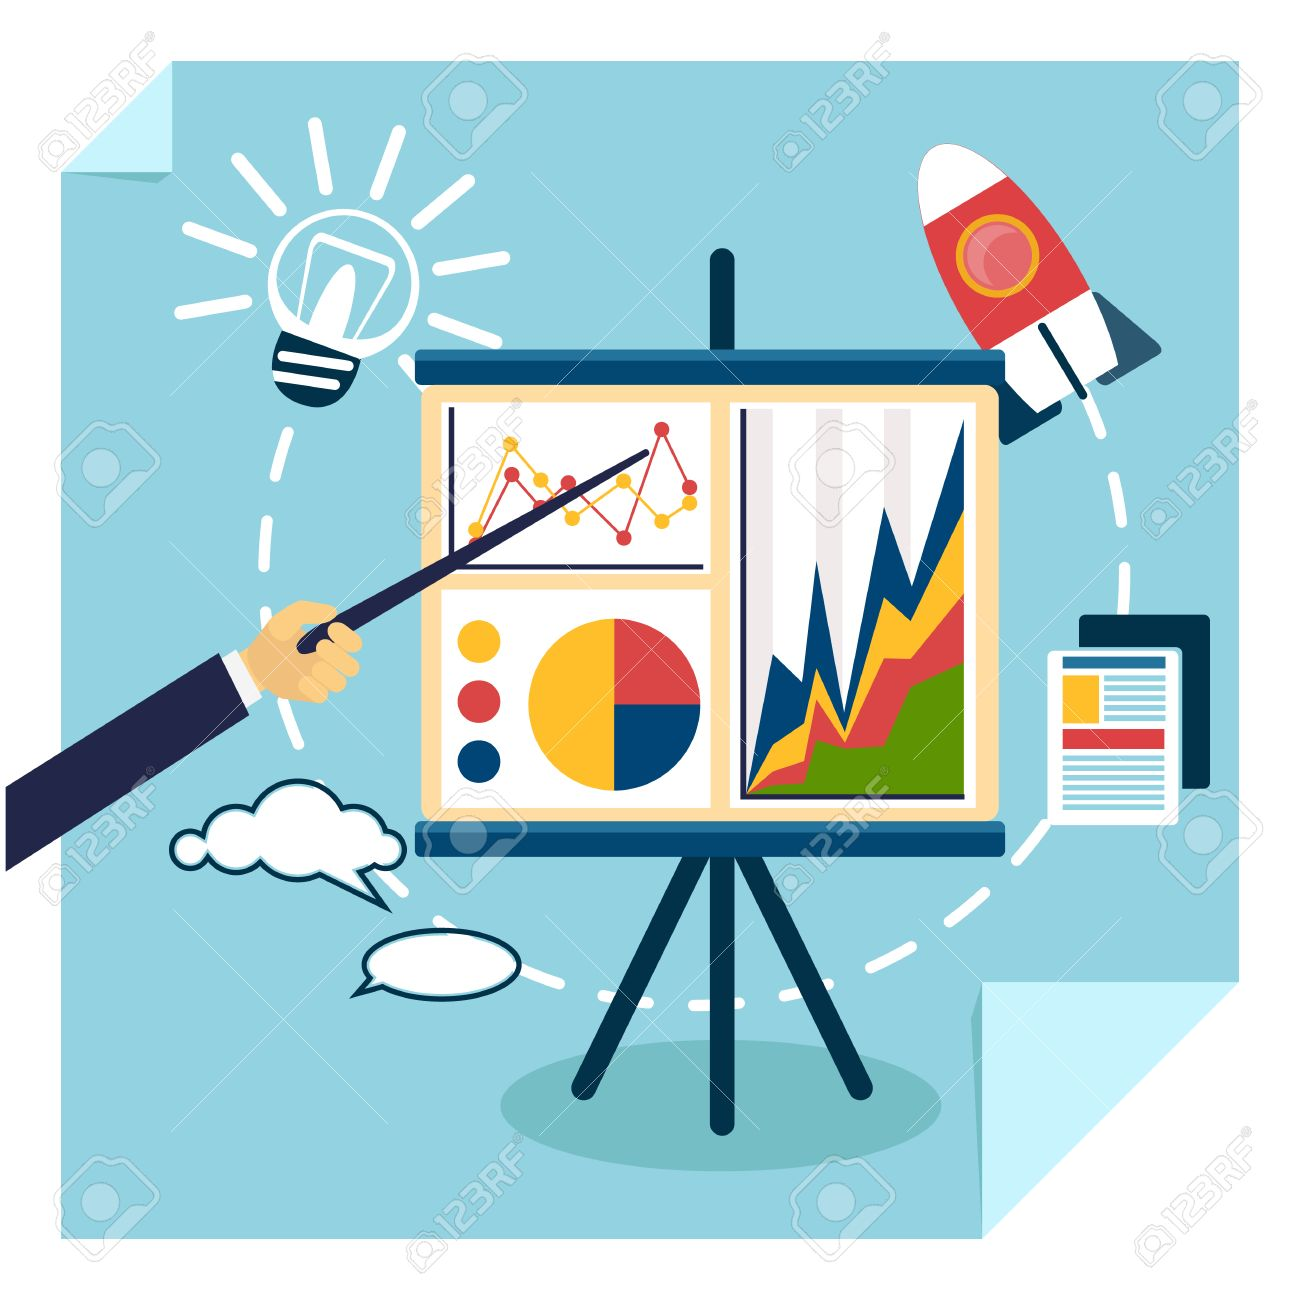 flat design of presentation business development concept from rh 123rf com free clipart images for business presentations free clipart images for business presentations